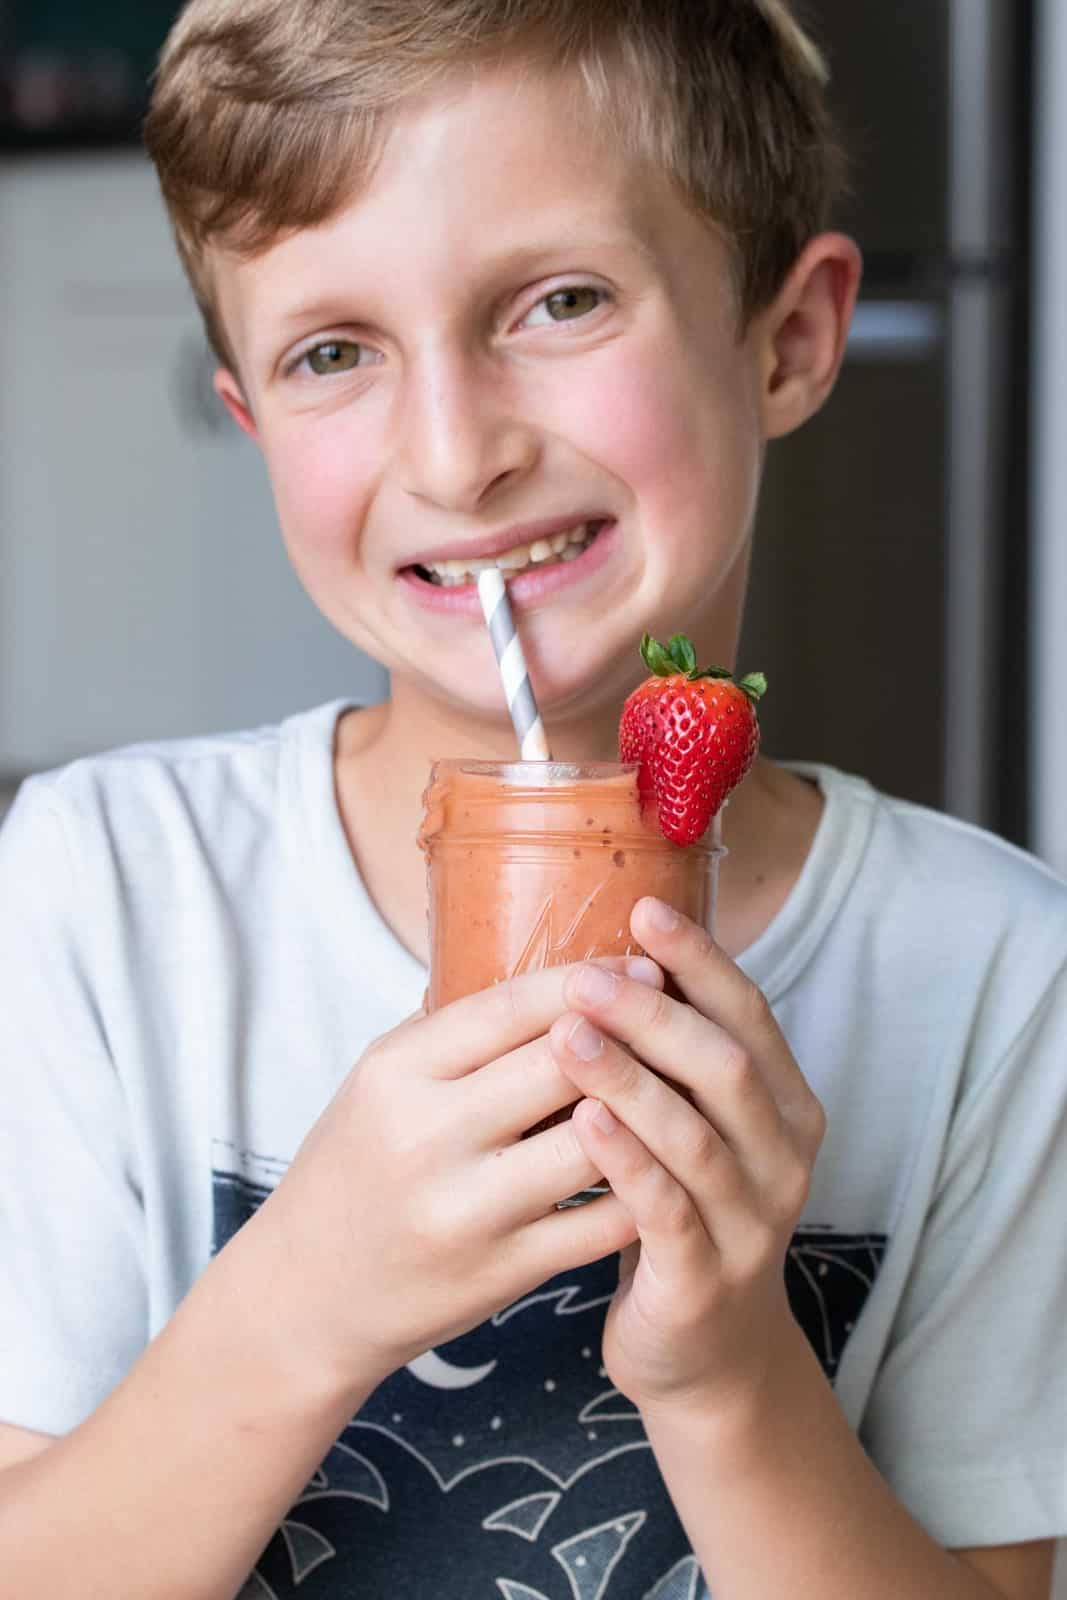 Boy drinking a salmon colored smoothie from a grey striped straw